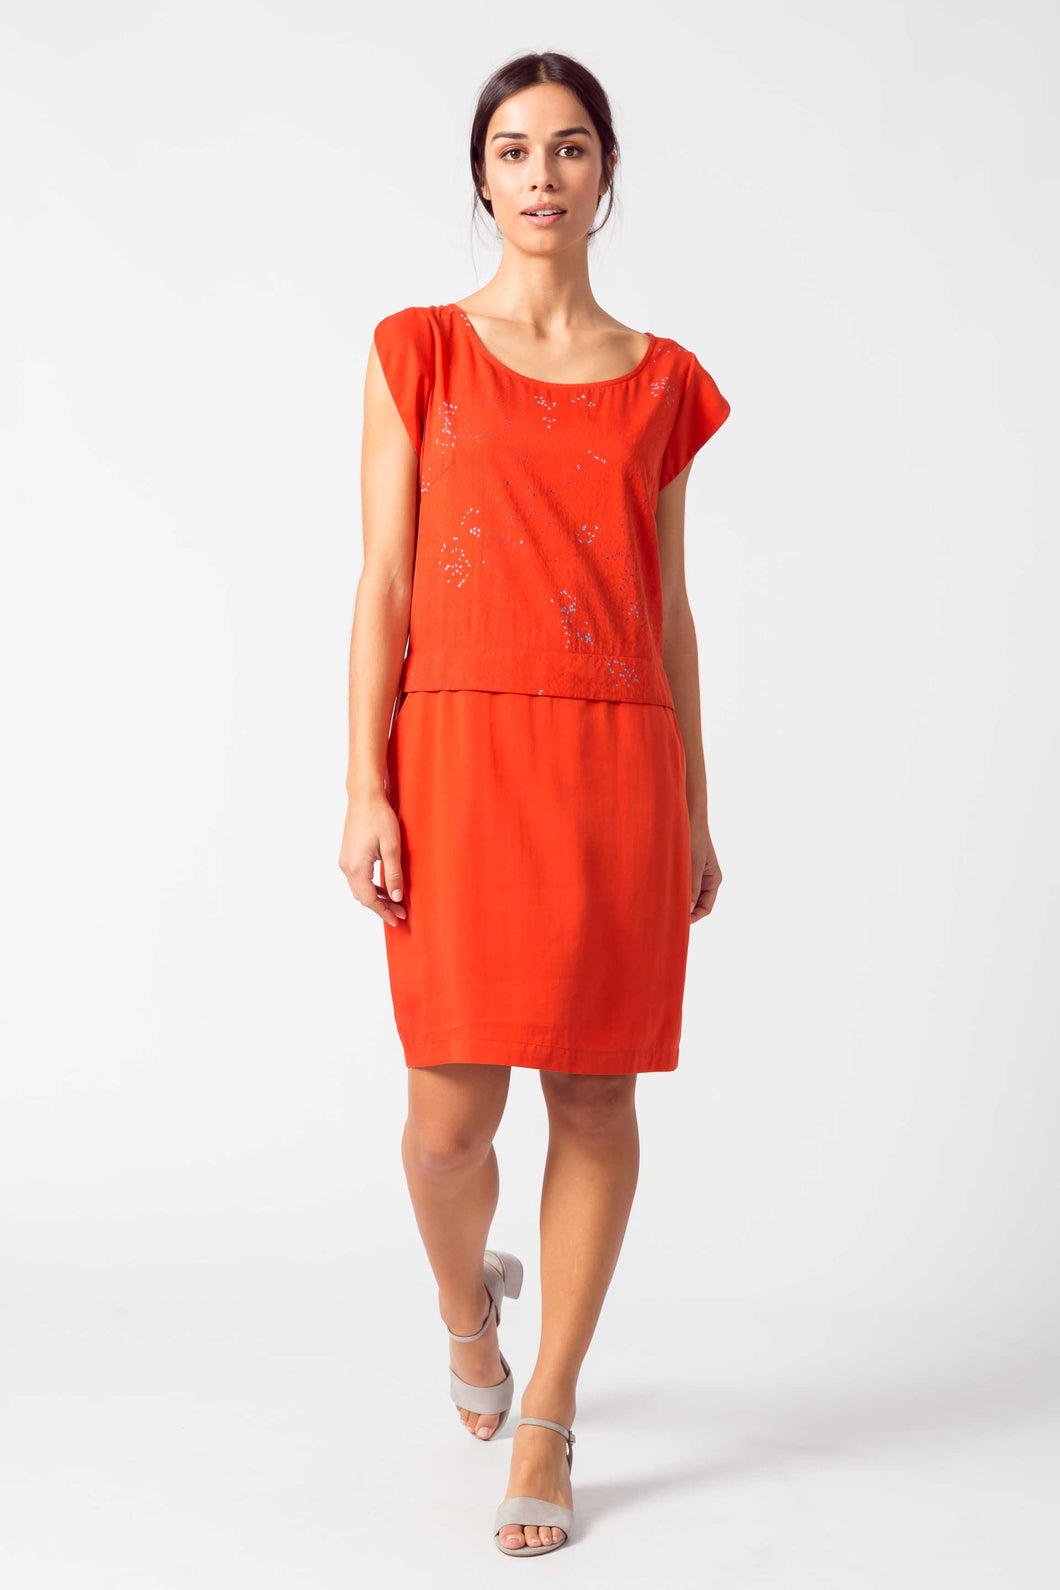 SKFK Nora print and plain casual dress in Orange - CW CW